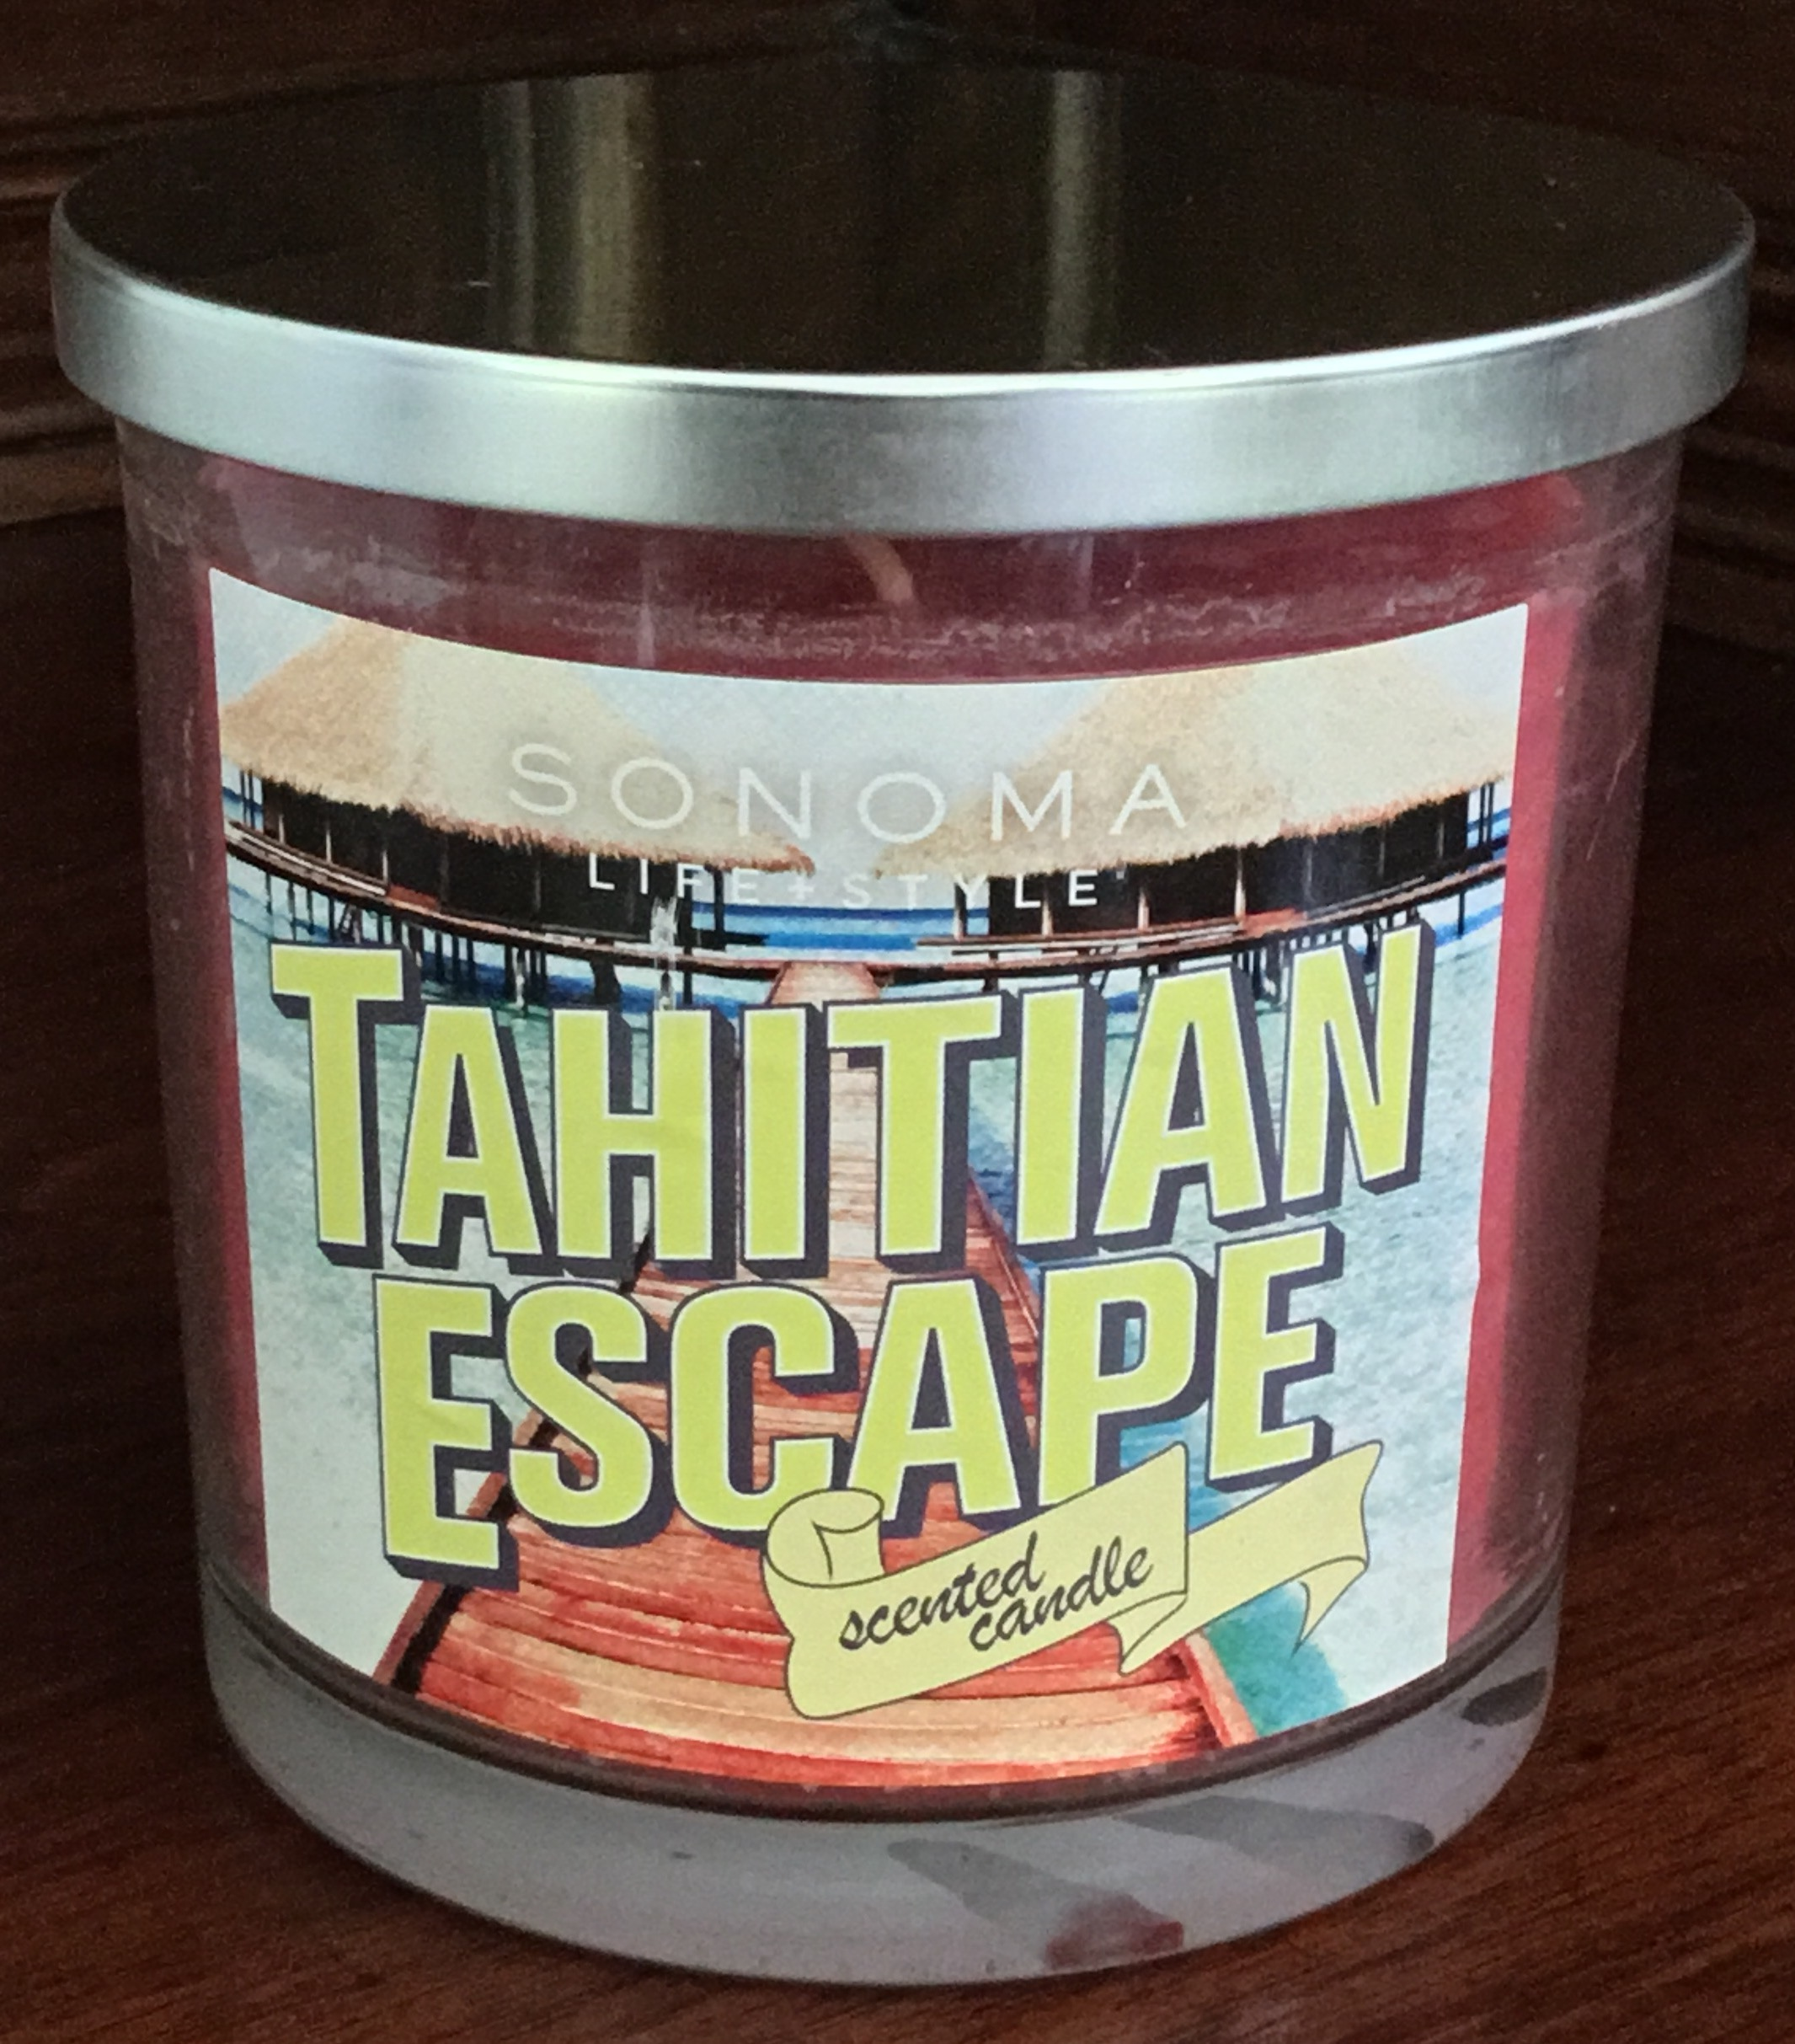 Sonoma Lifestyle, Tahitian Escape Candle